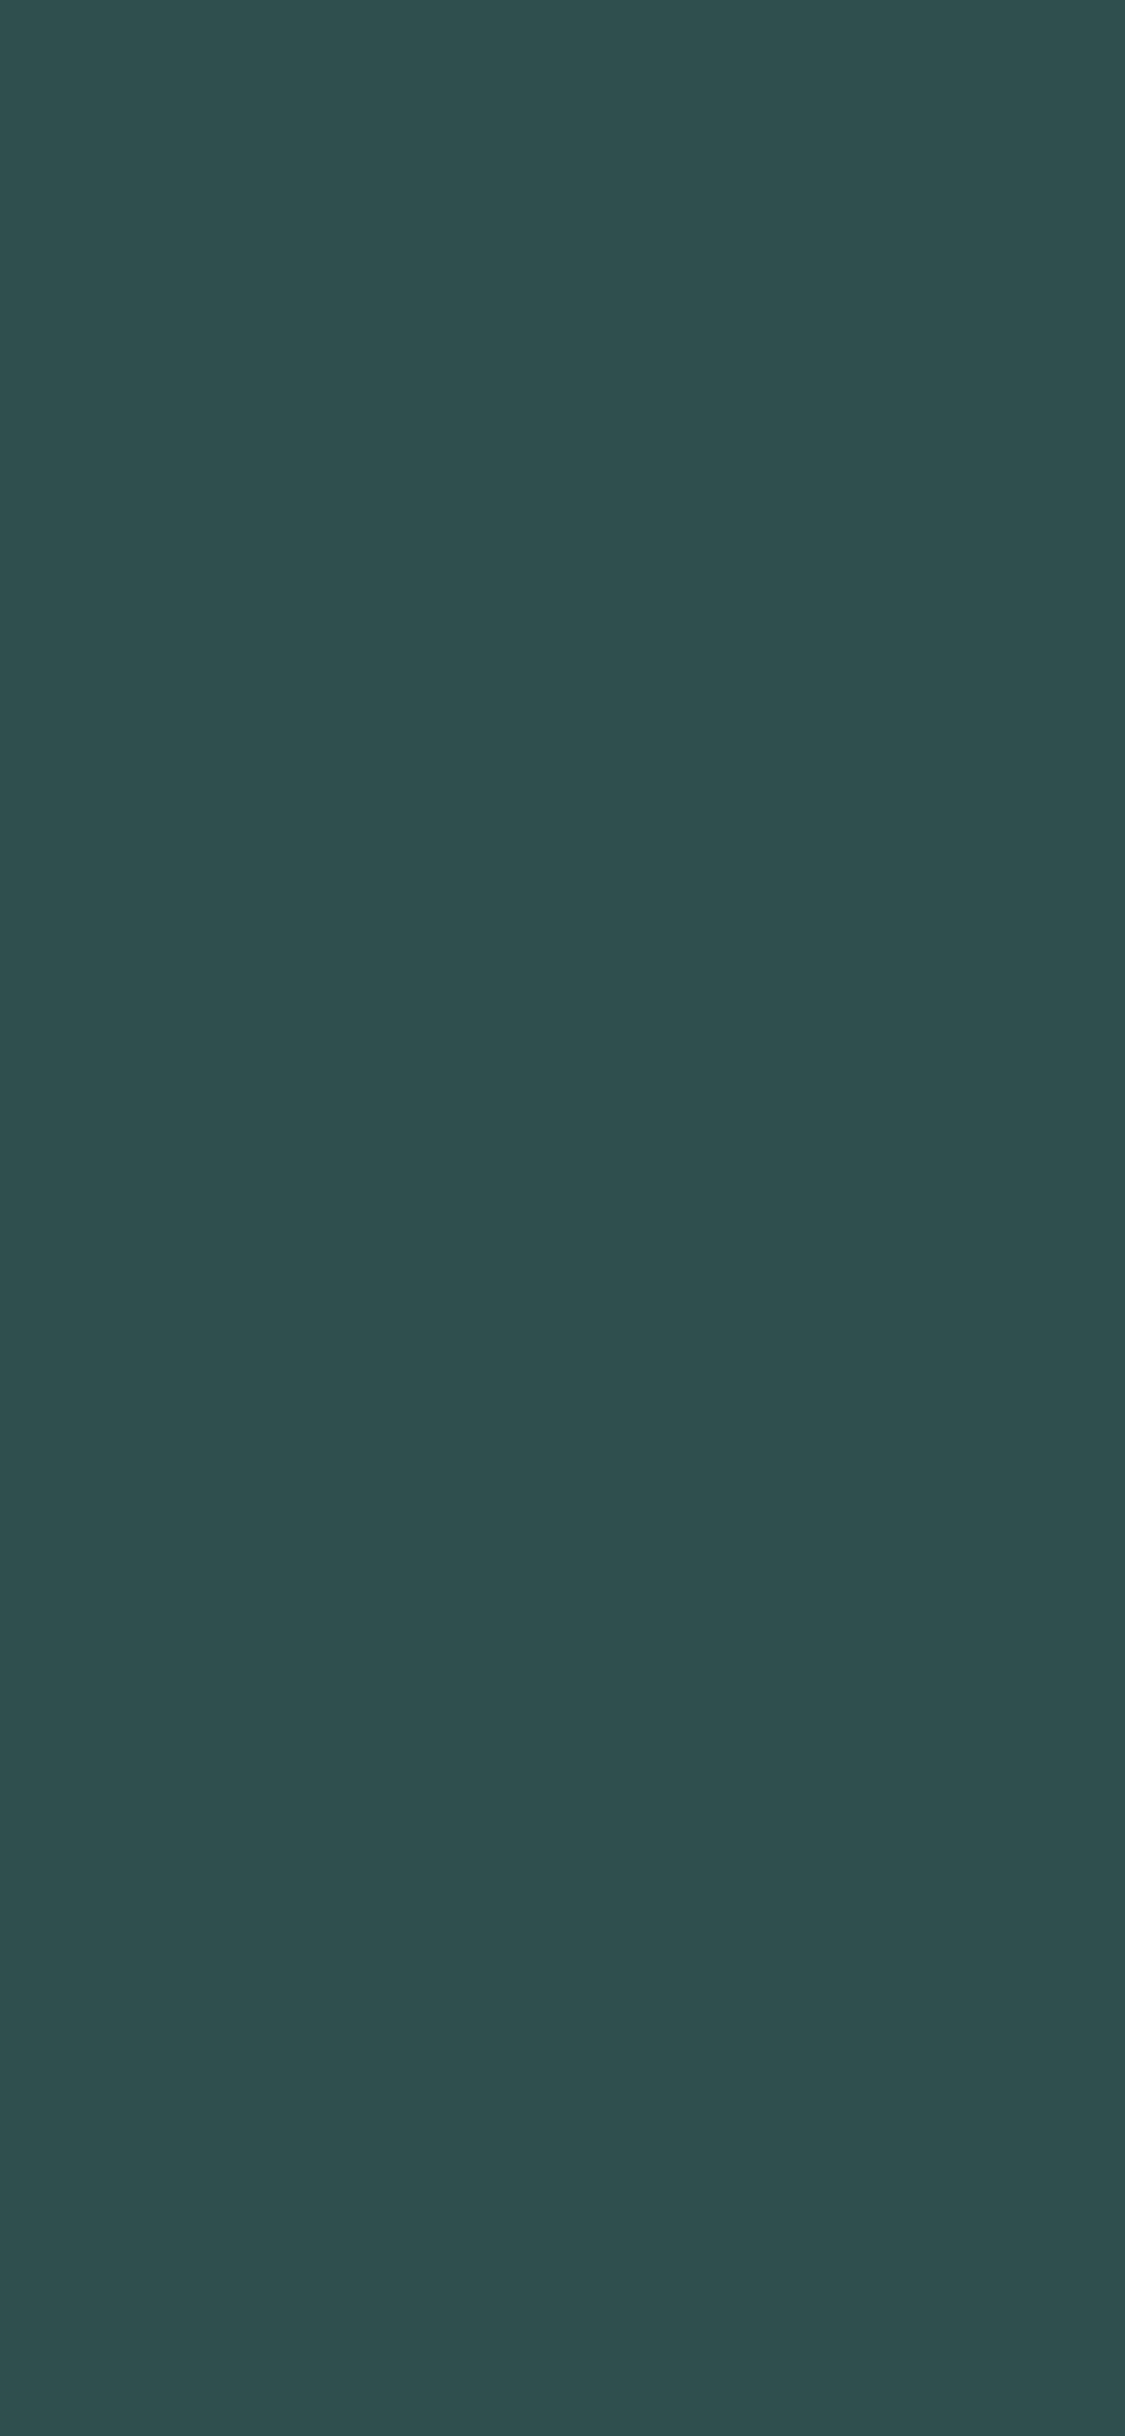 1125x2436 Dark Slate Gray Solid Color Background